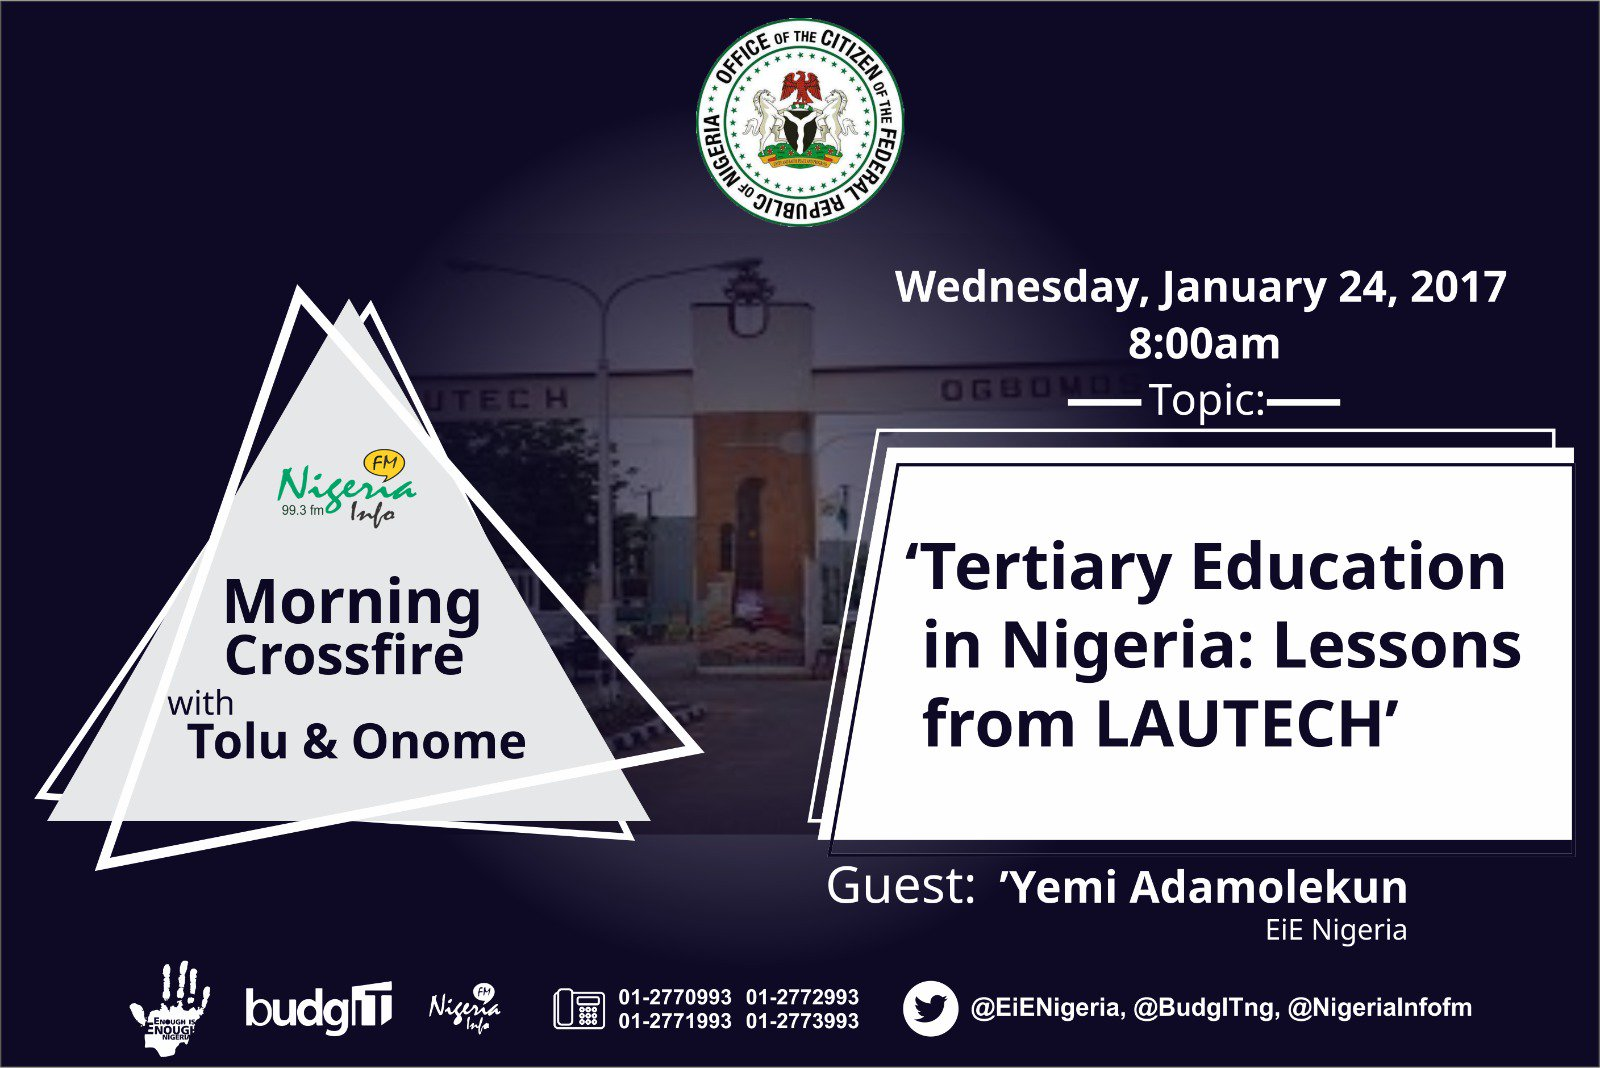 Thumbnail for #OfficeOfTheCitizen: Tertiary Education in Nigeria - Lessons from LAUTECH